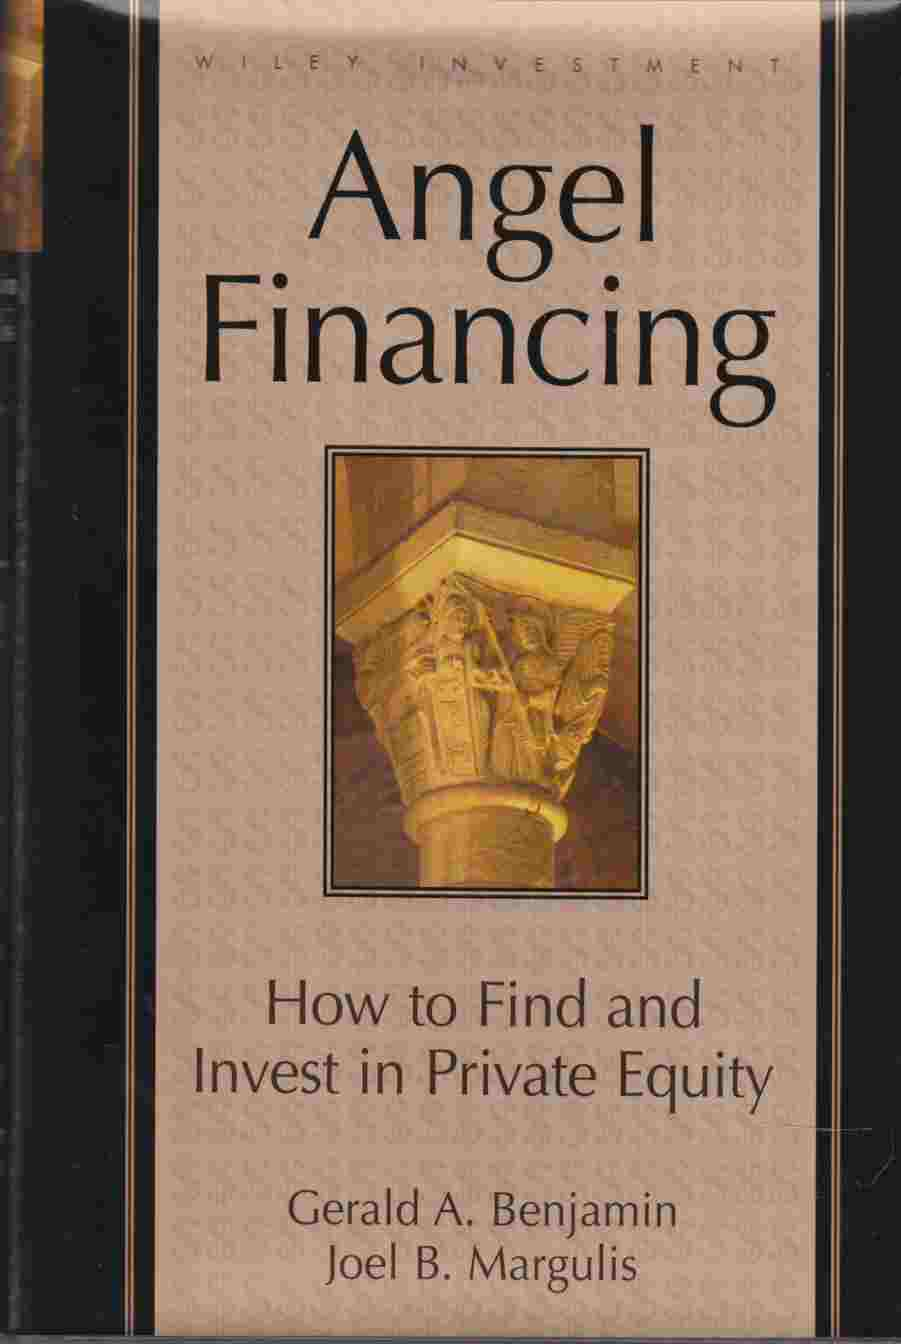 Image for Angel Financing How to Find and Invest in Private Equity